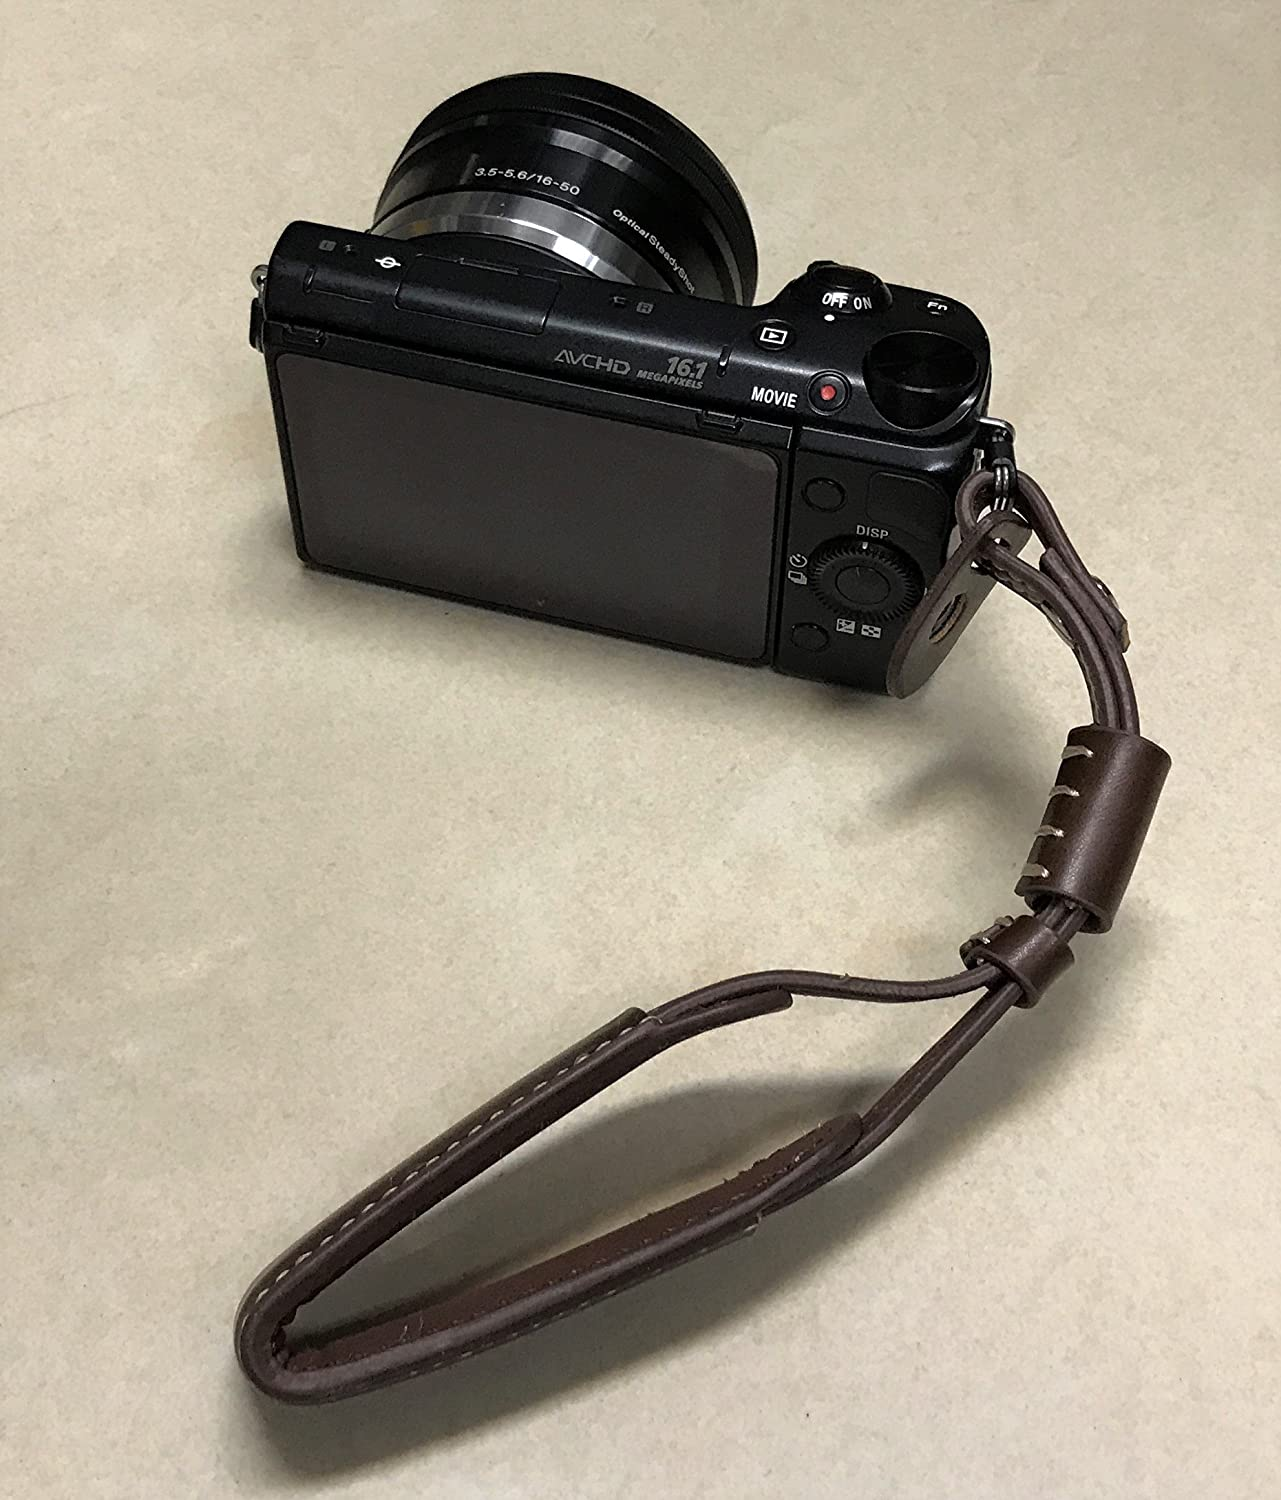 Gadget Place Dark Brown Classy Leather Wrist Strap for Olympus OM-D E-M10 Mark III